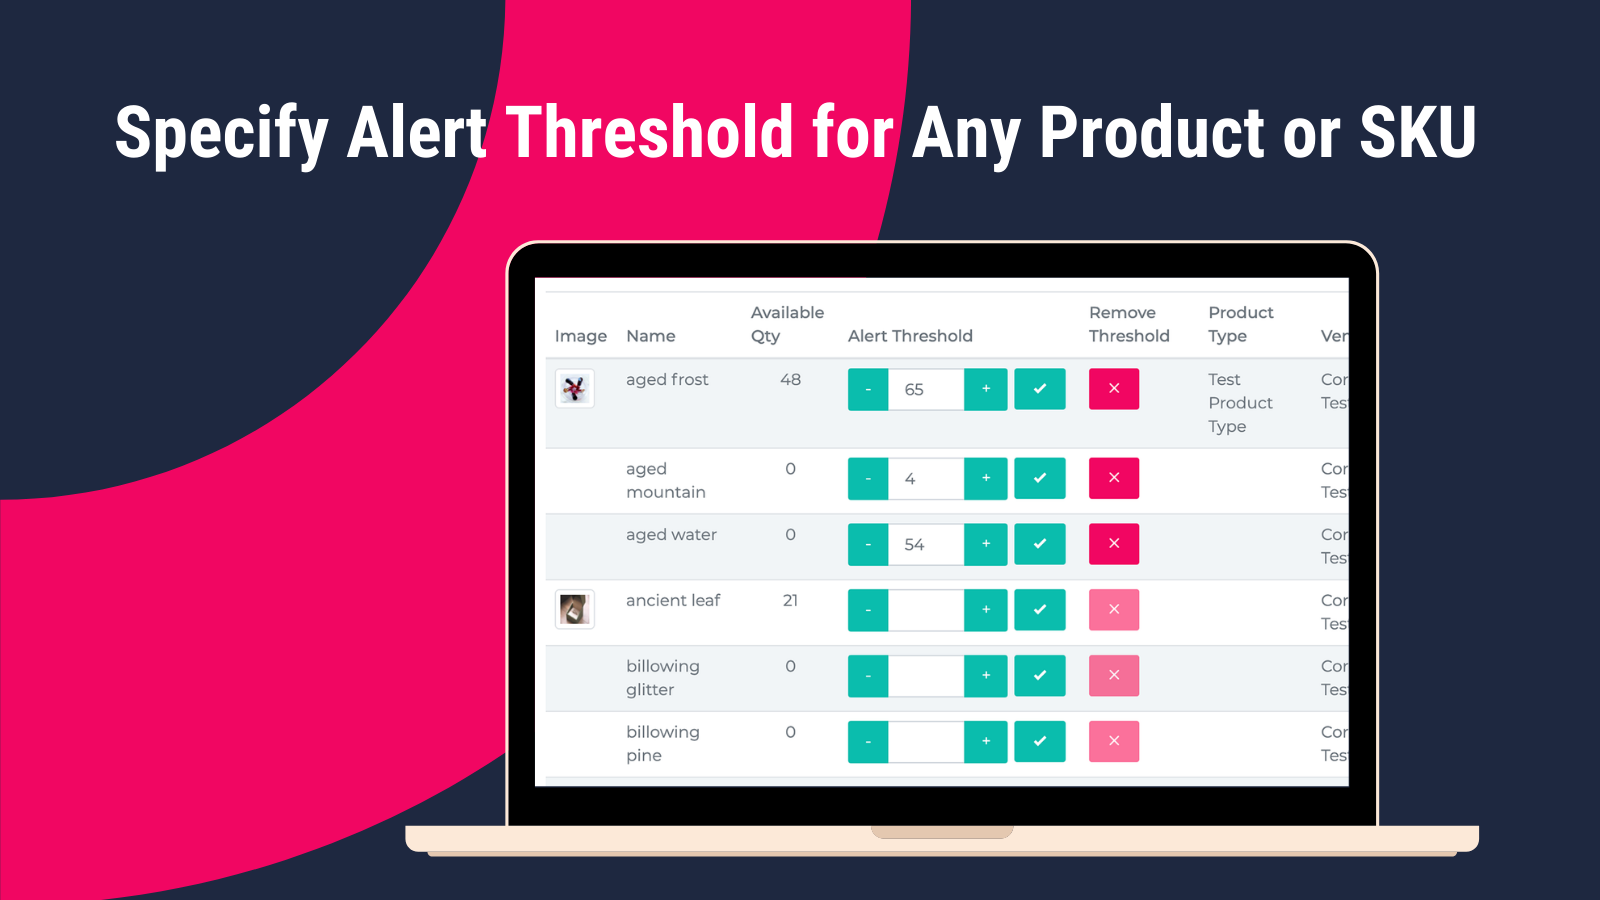 Specify Alert Threshold for Any Product or SKU